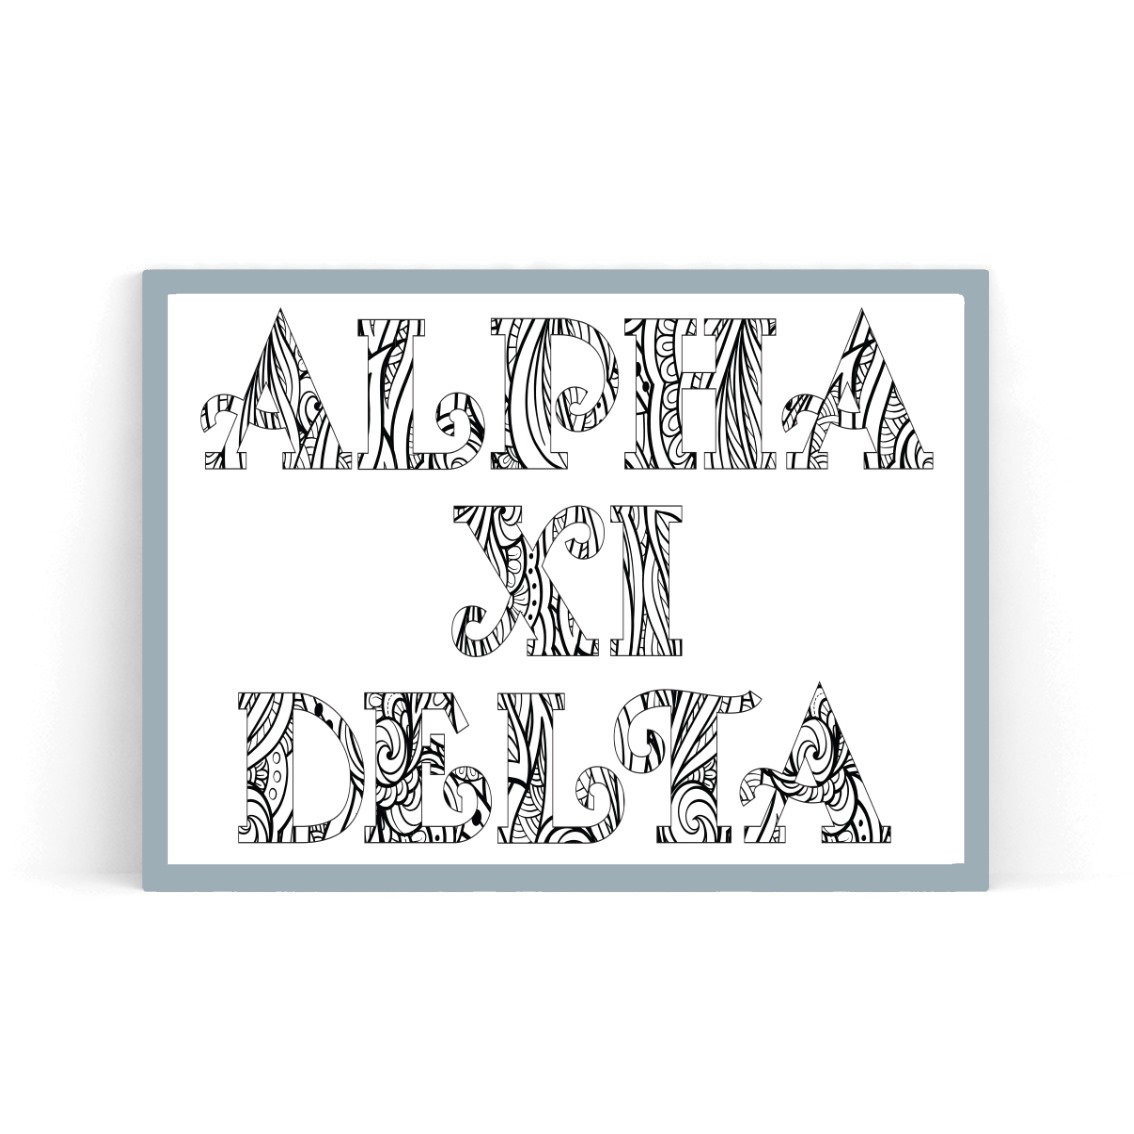 College Coloring Books Alpha Xi Delta Coloring Poster in Frame